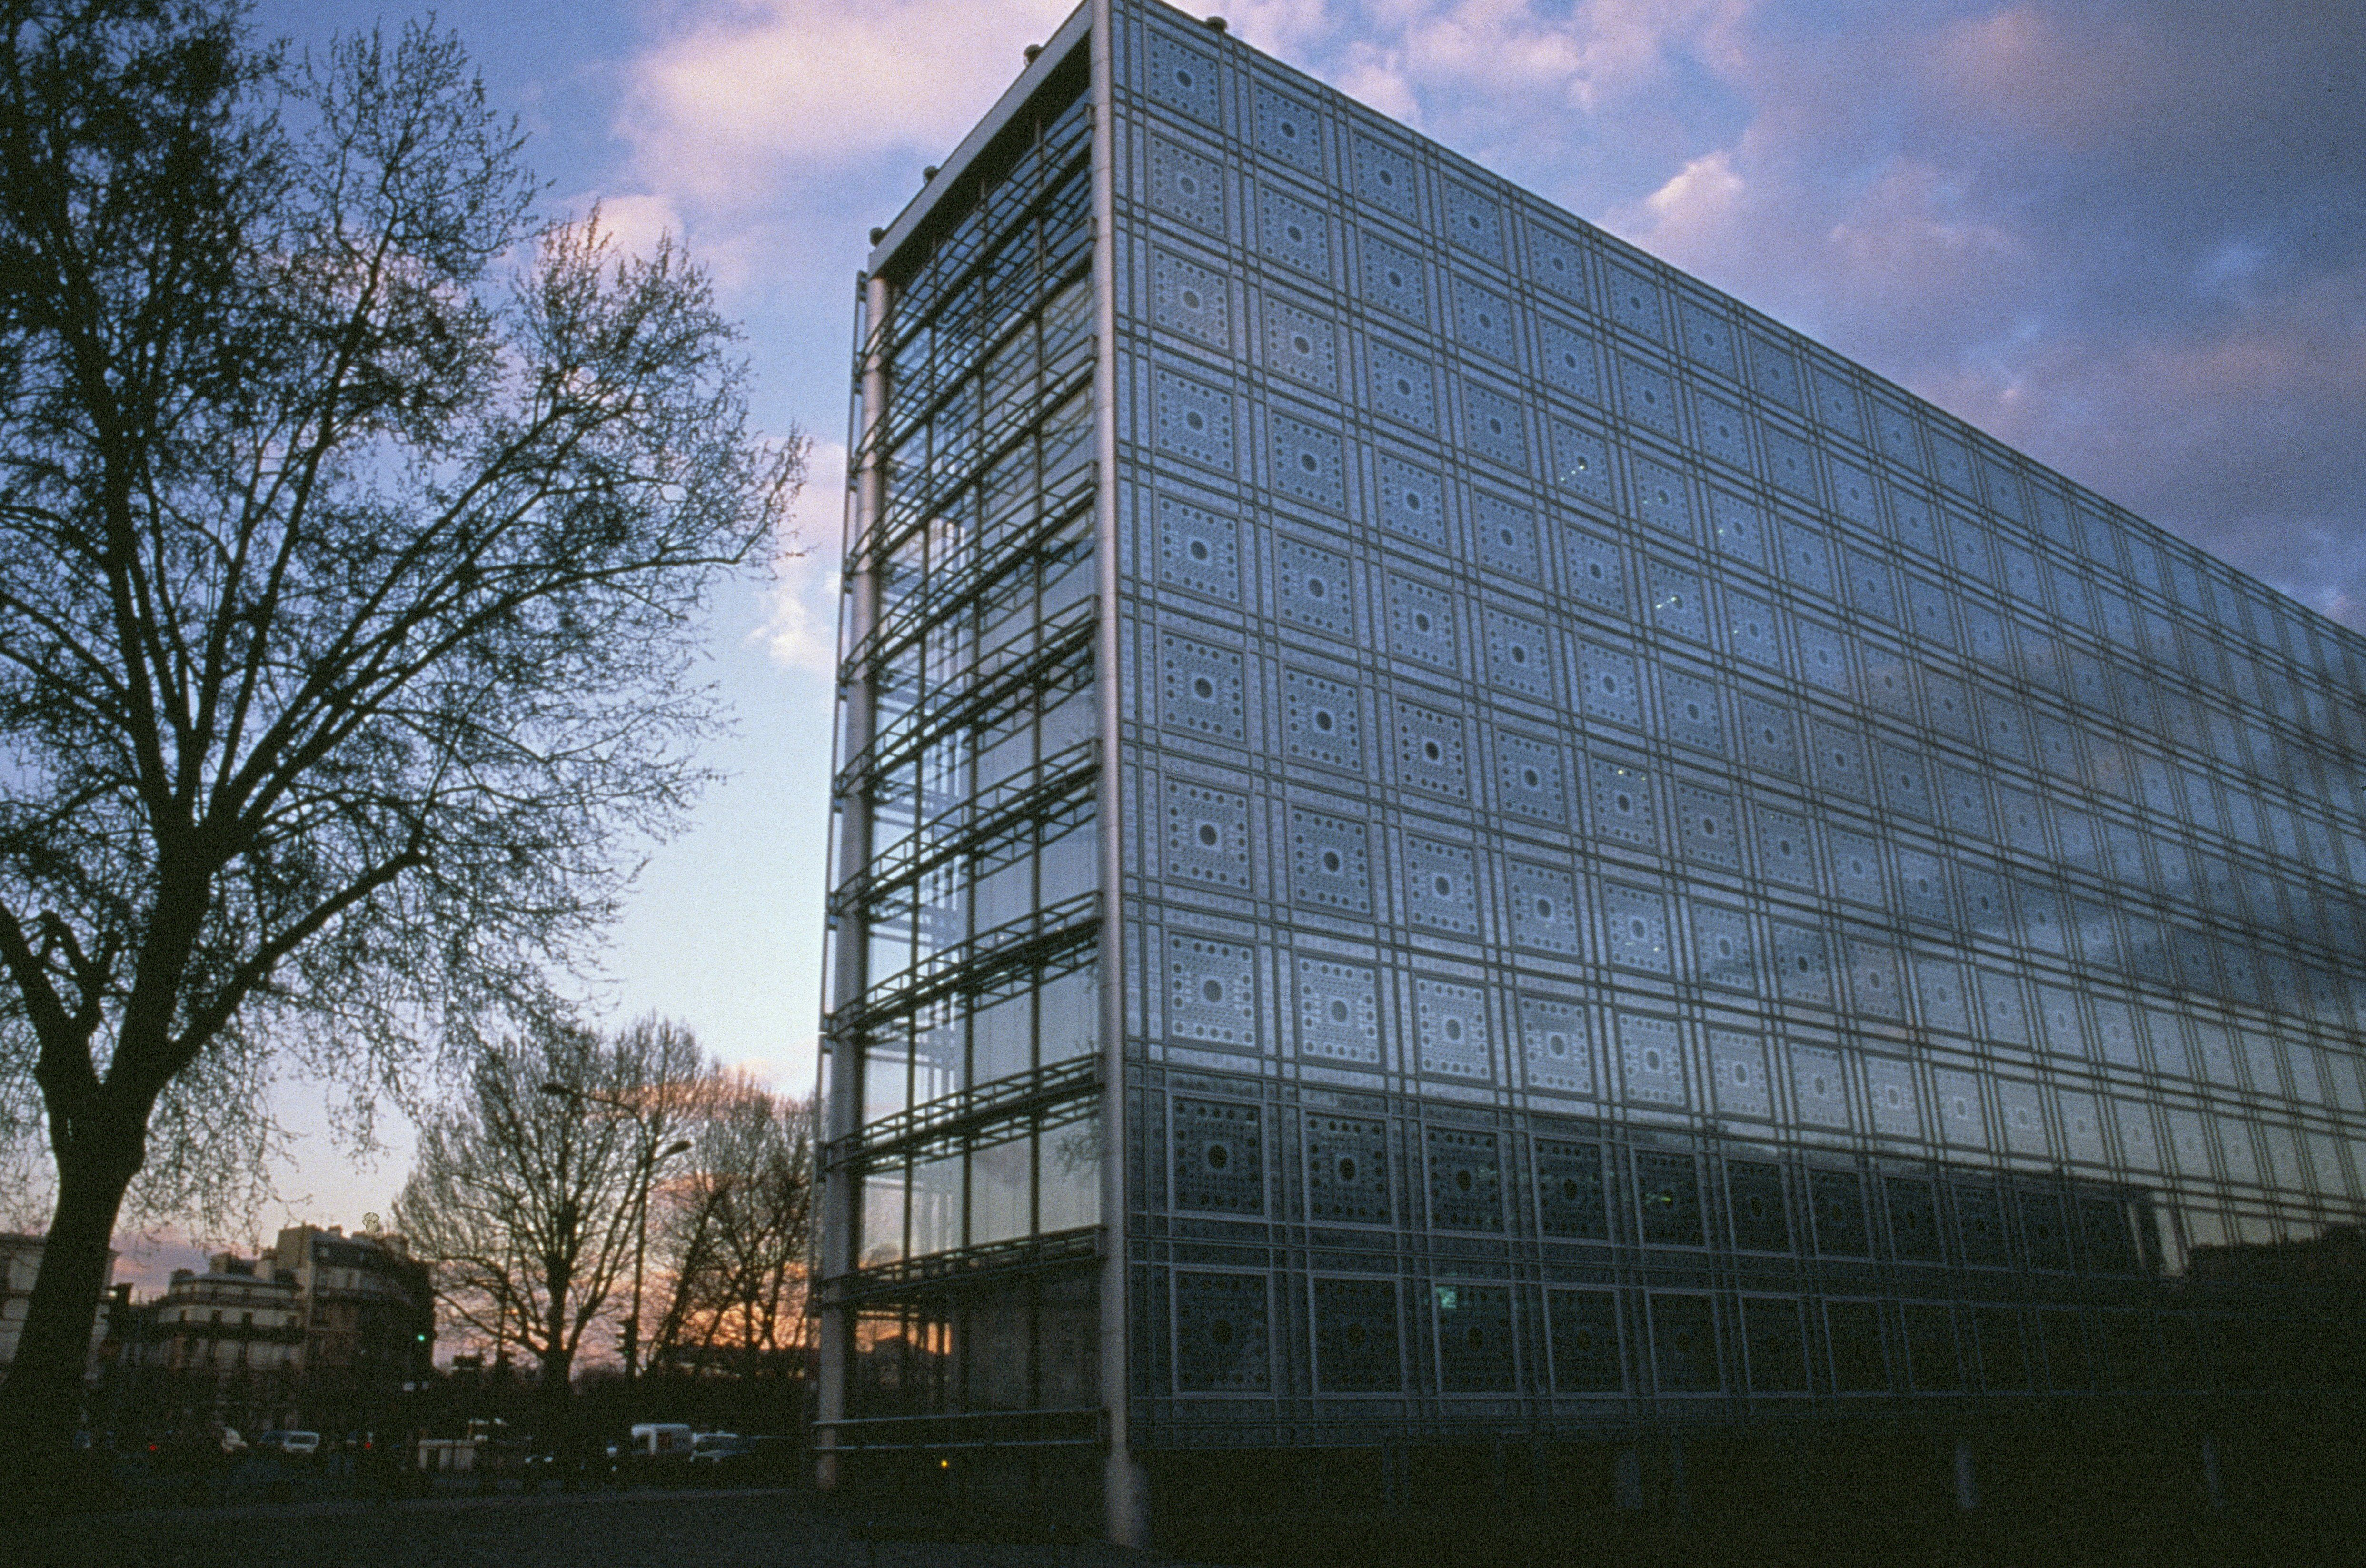 typical commercial building shape but with a lattice metal panel facade